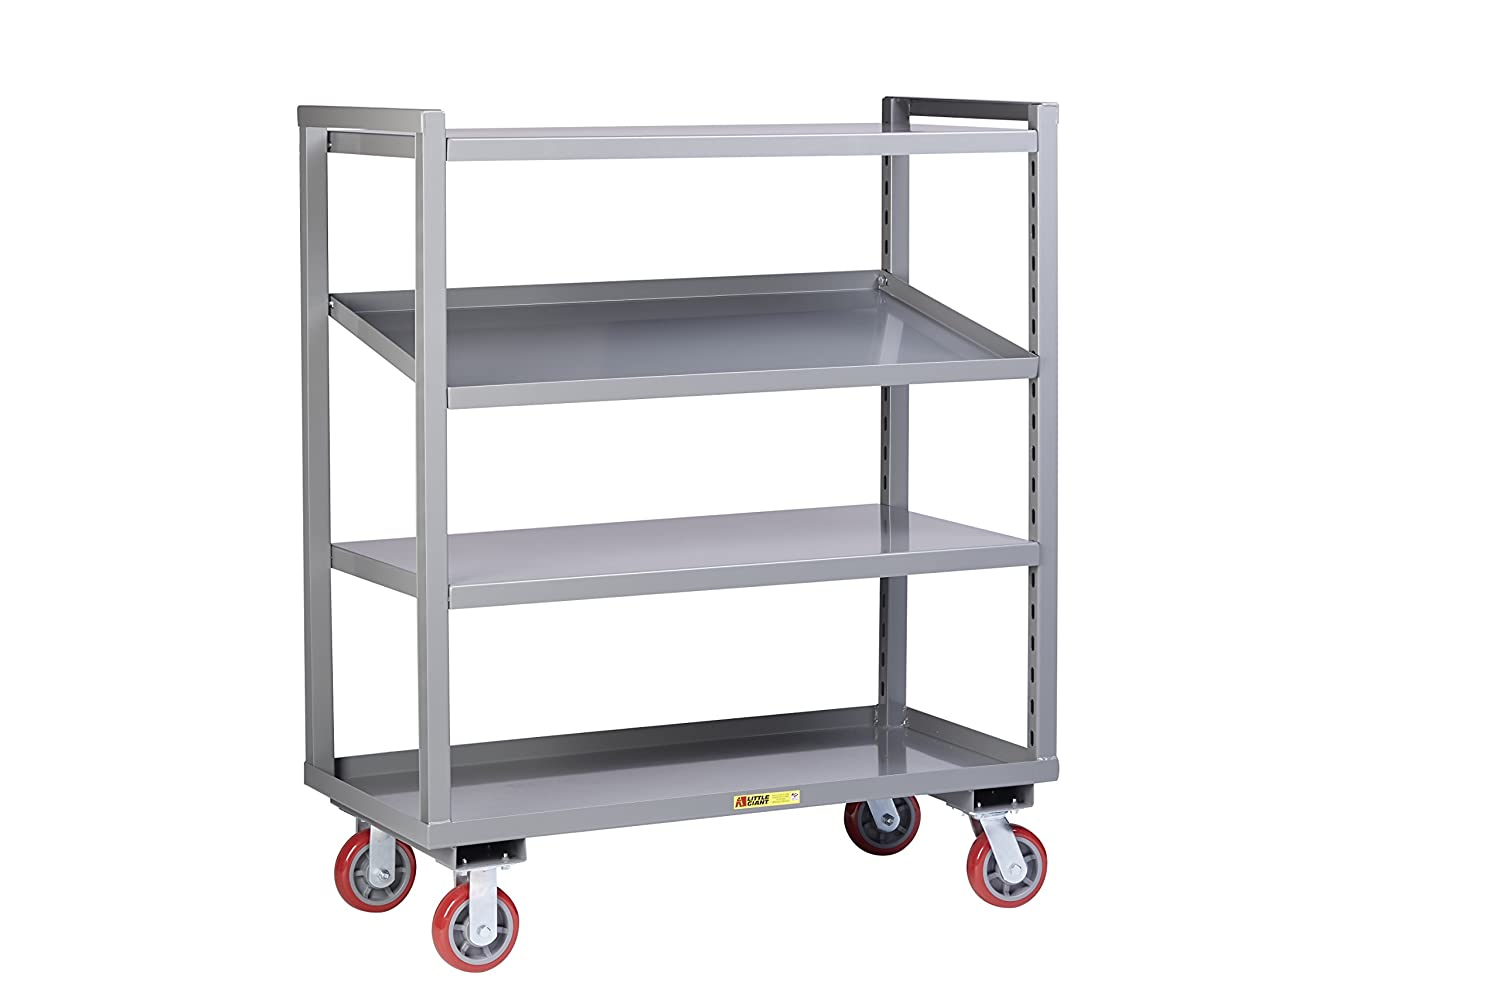 Adjustable Width Shelving Little Giant Am 3a 2448 6py Adjustable Height Multi Shelf Truck 3